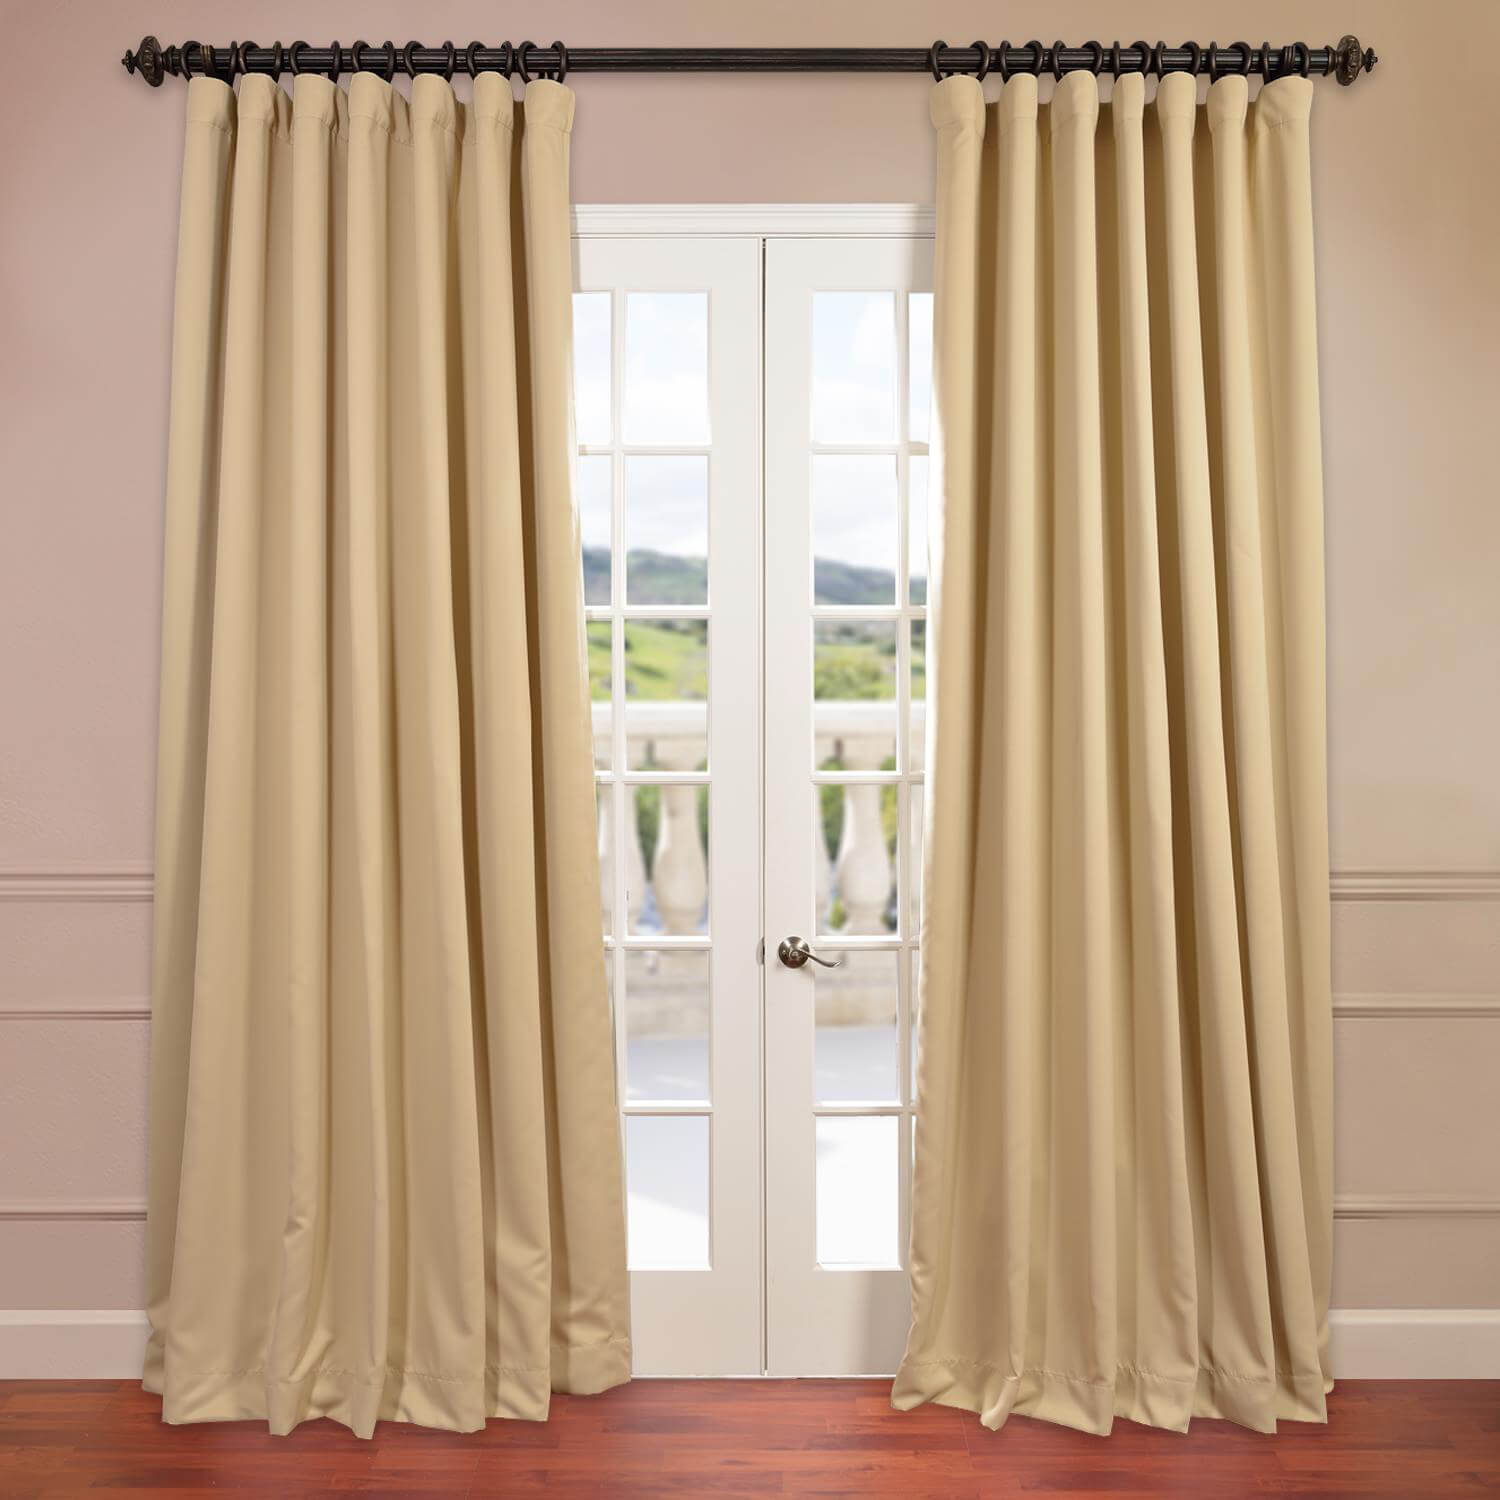 Biscotti Doublewide Blackout Curtain